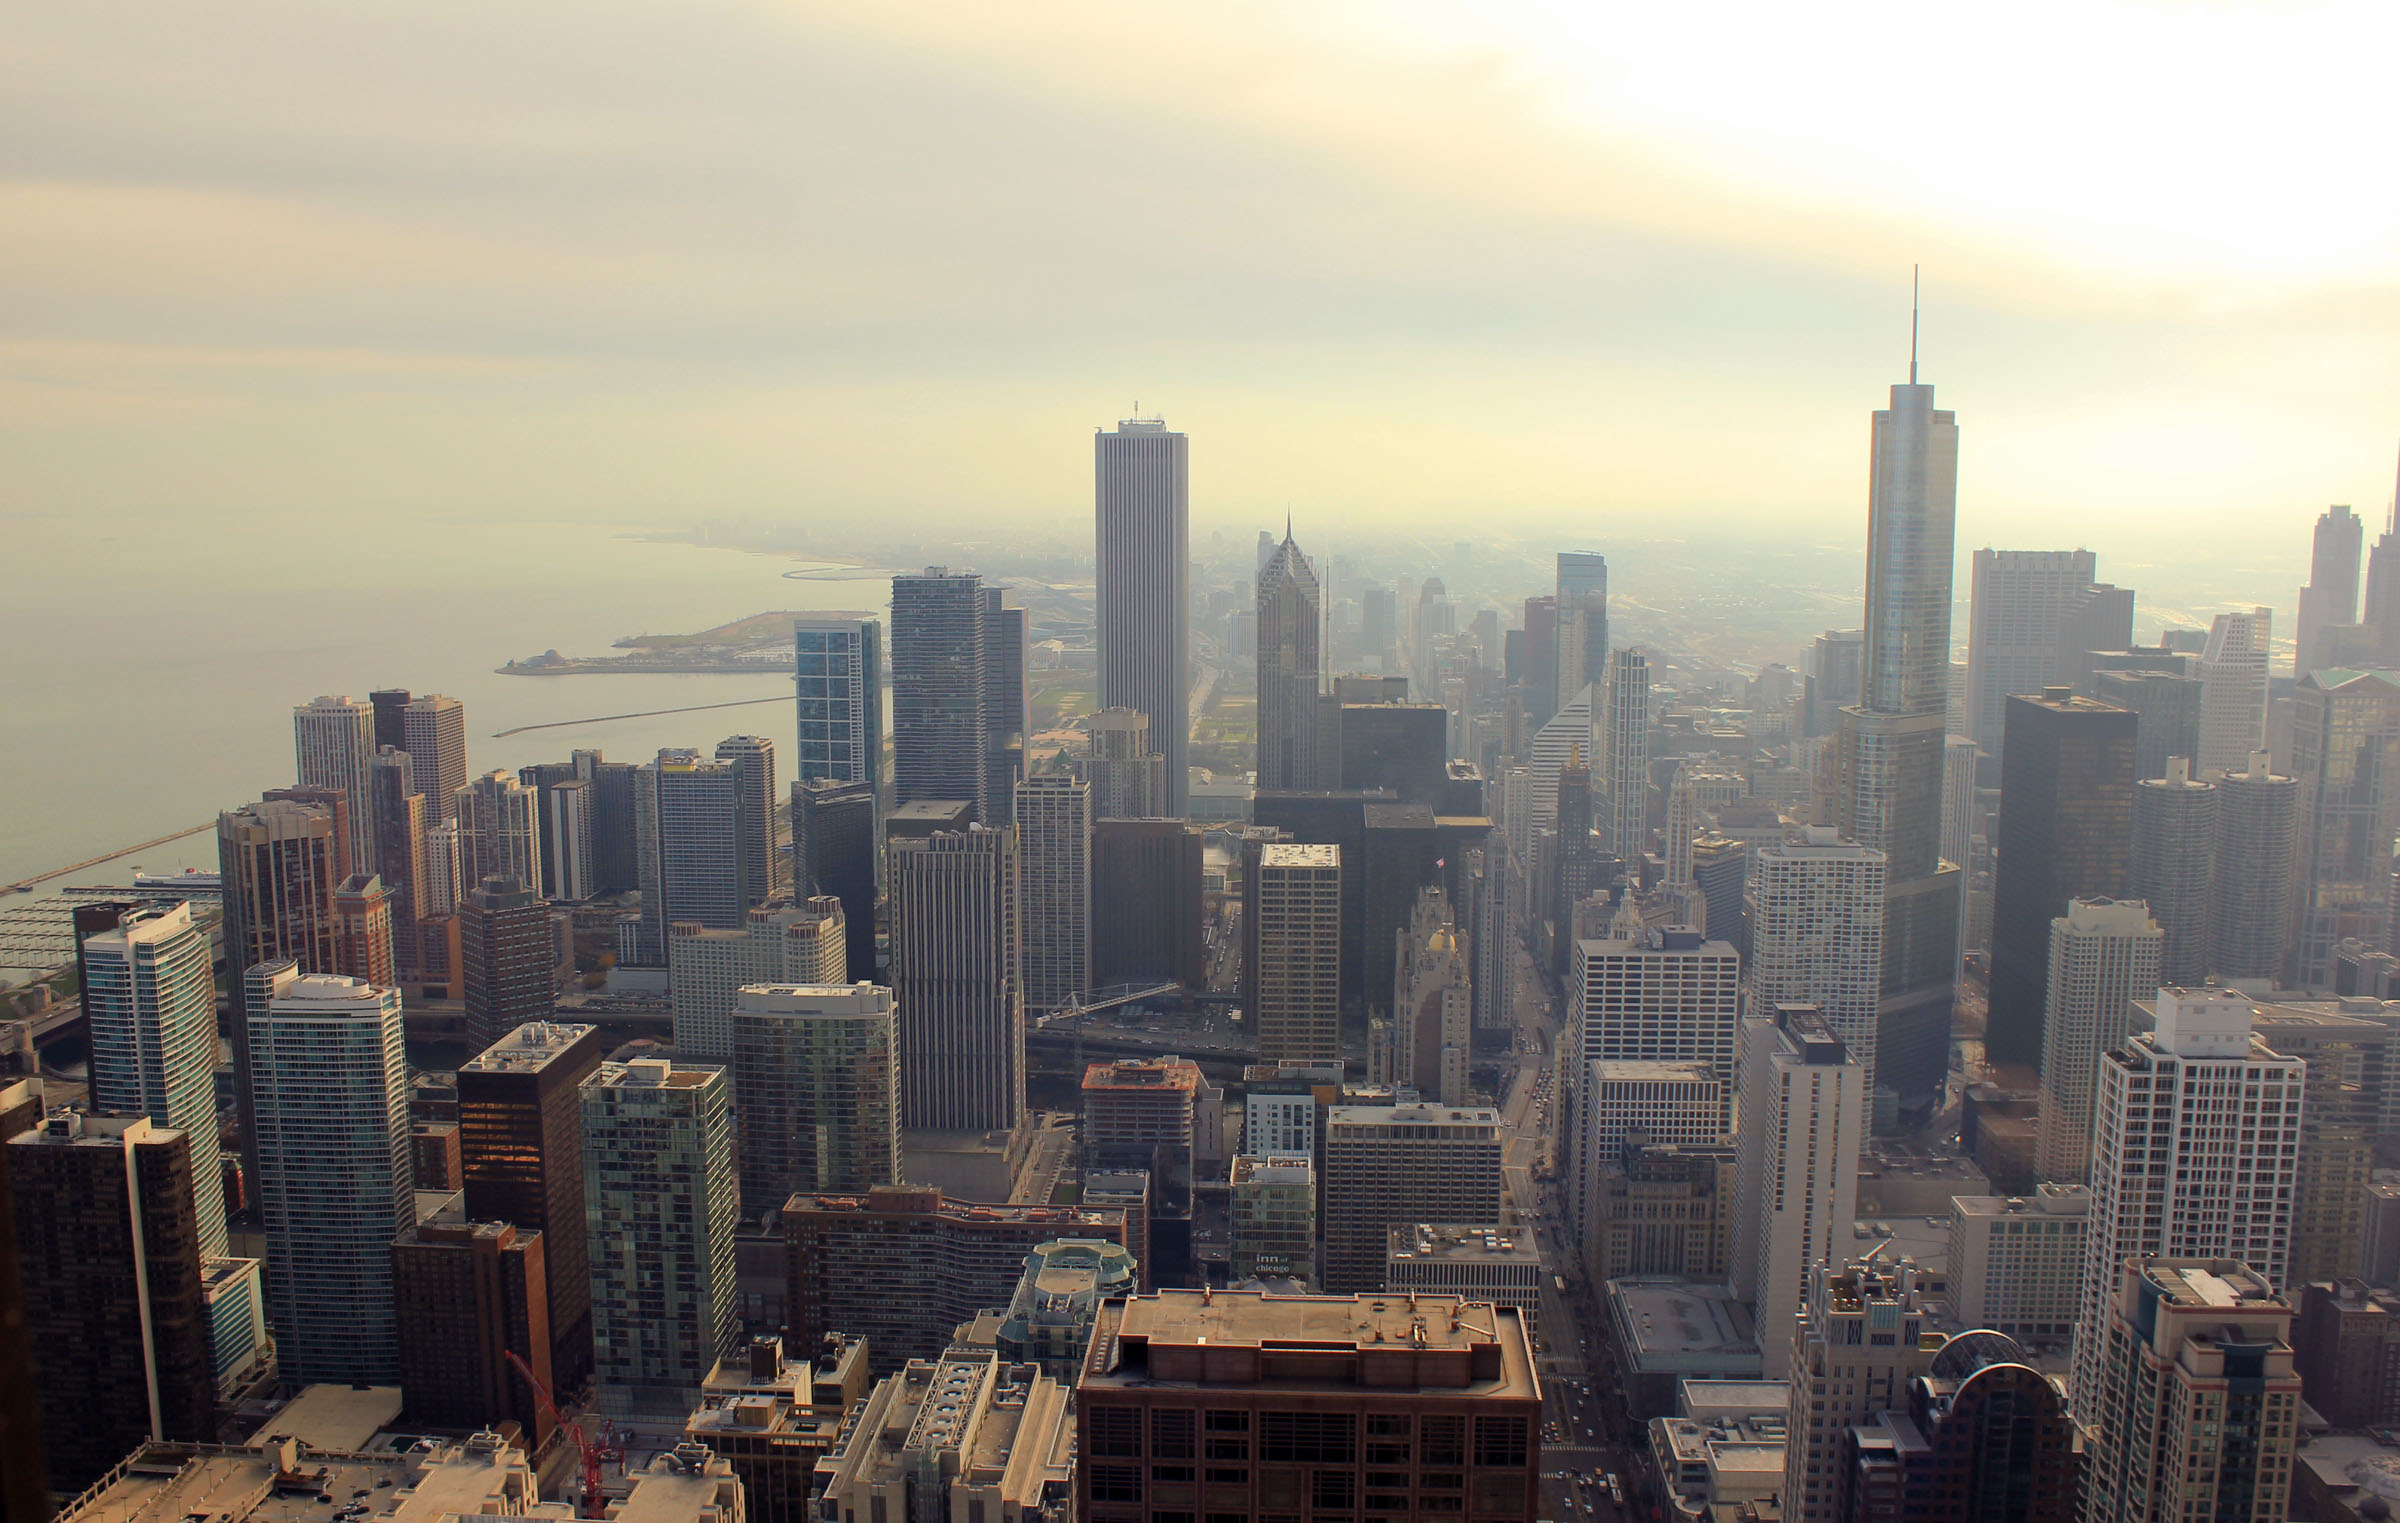 New York City Full Hd Wallpaper Sky View From Signature Room In Chicago Illinois Image